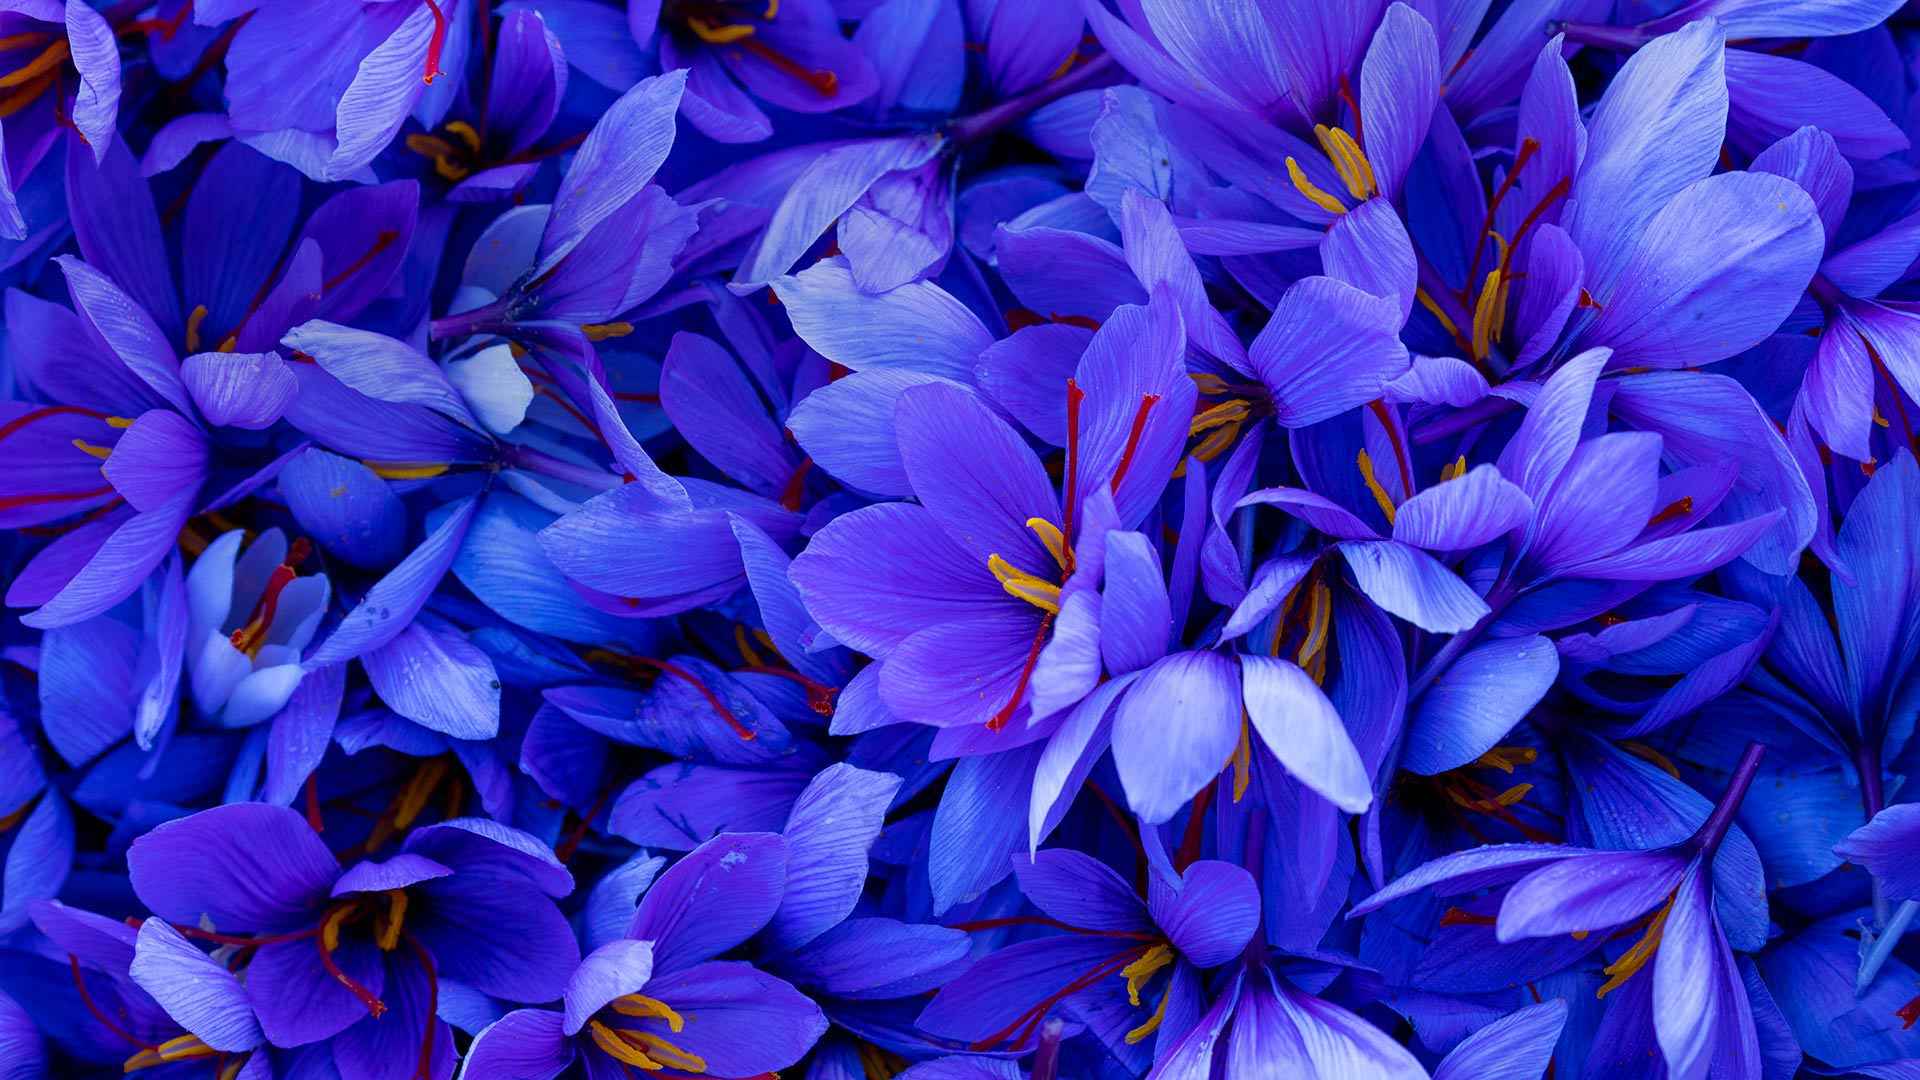 Saffron crocus flowers in Spain (© Juan-Carlos Munoz/Minden Pictures)(Bing United States)